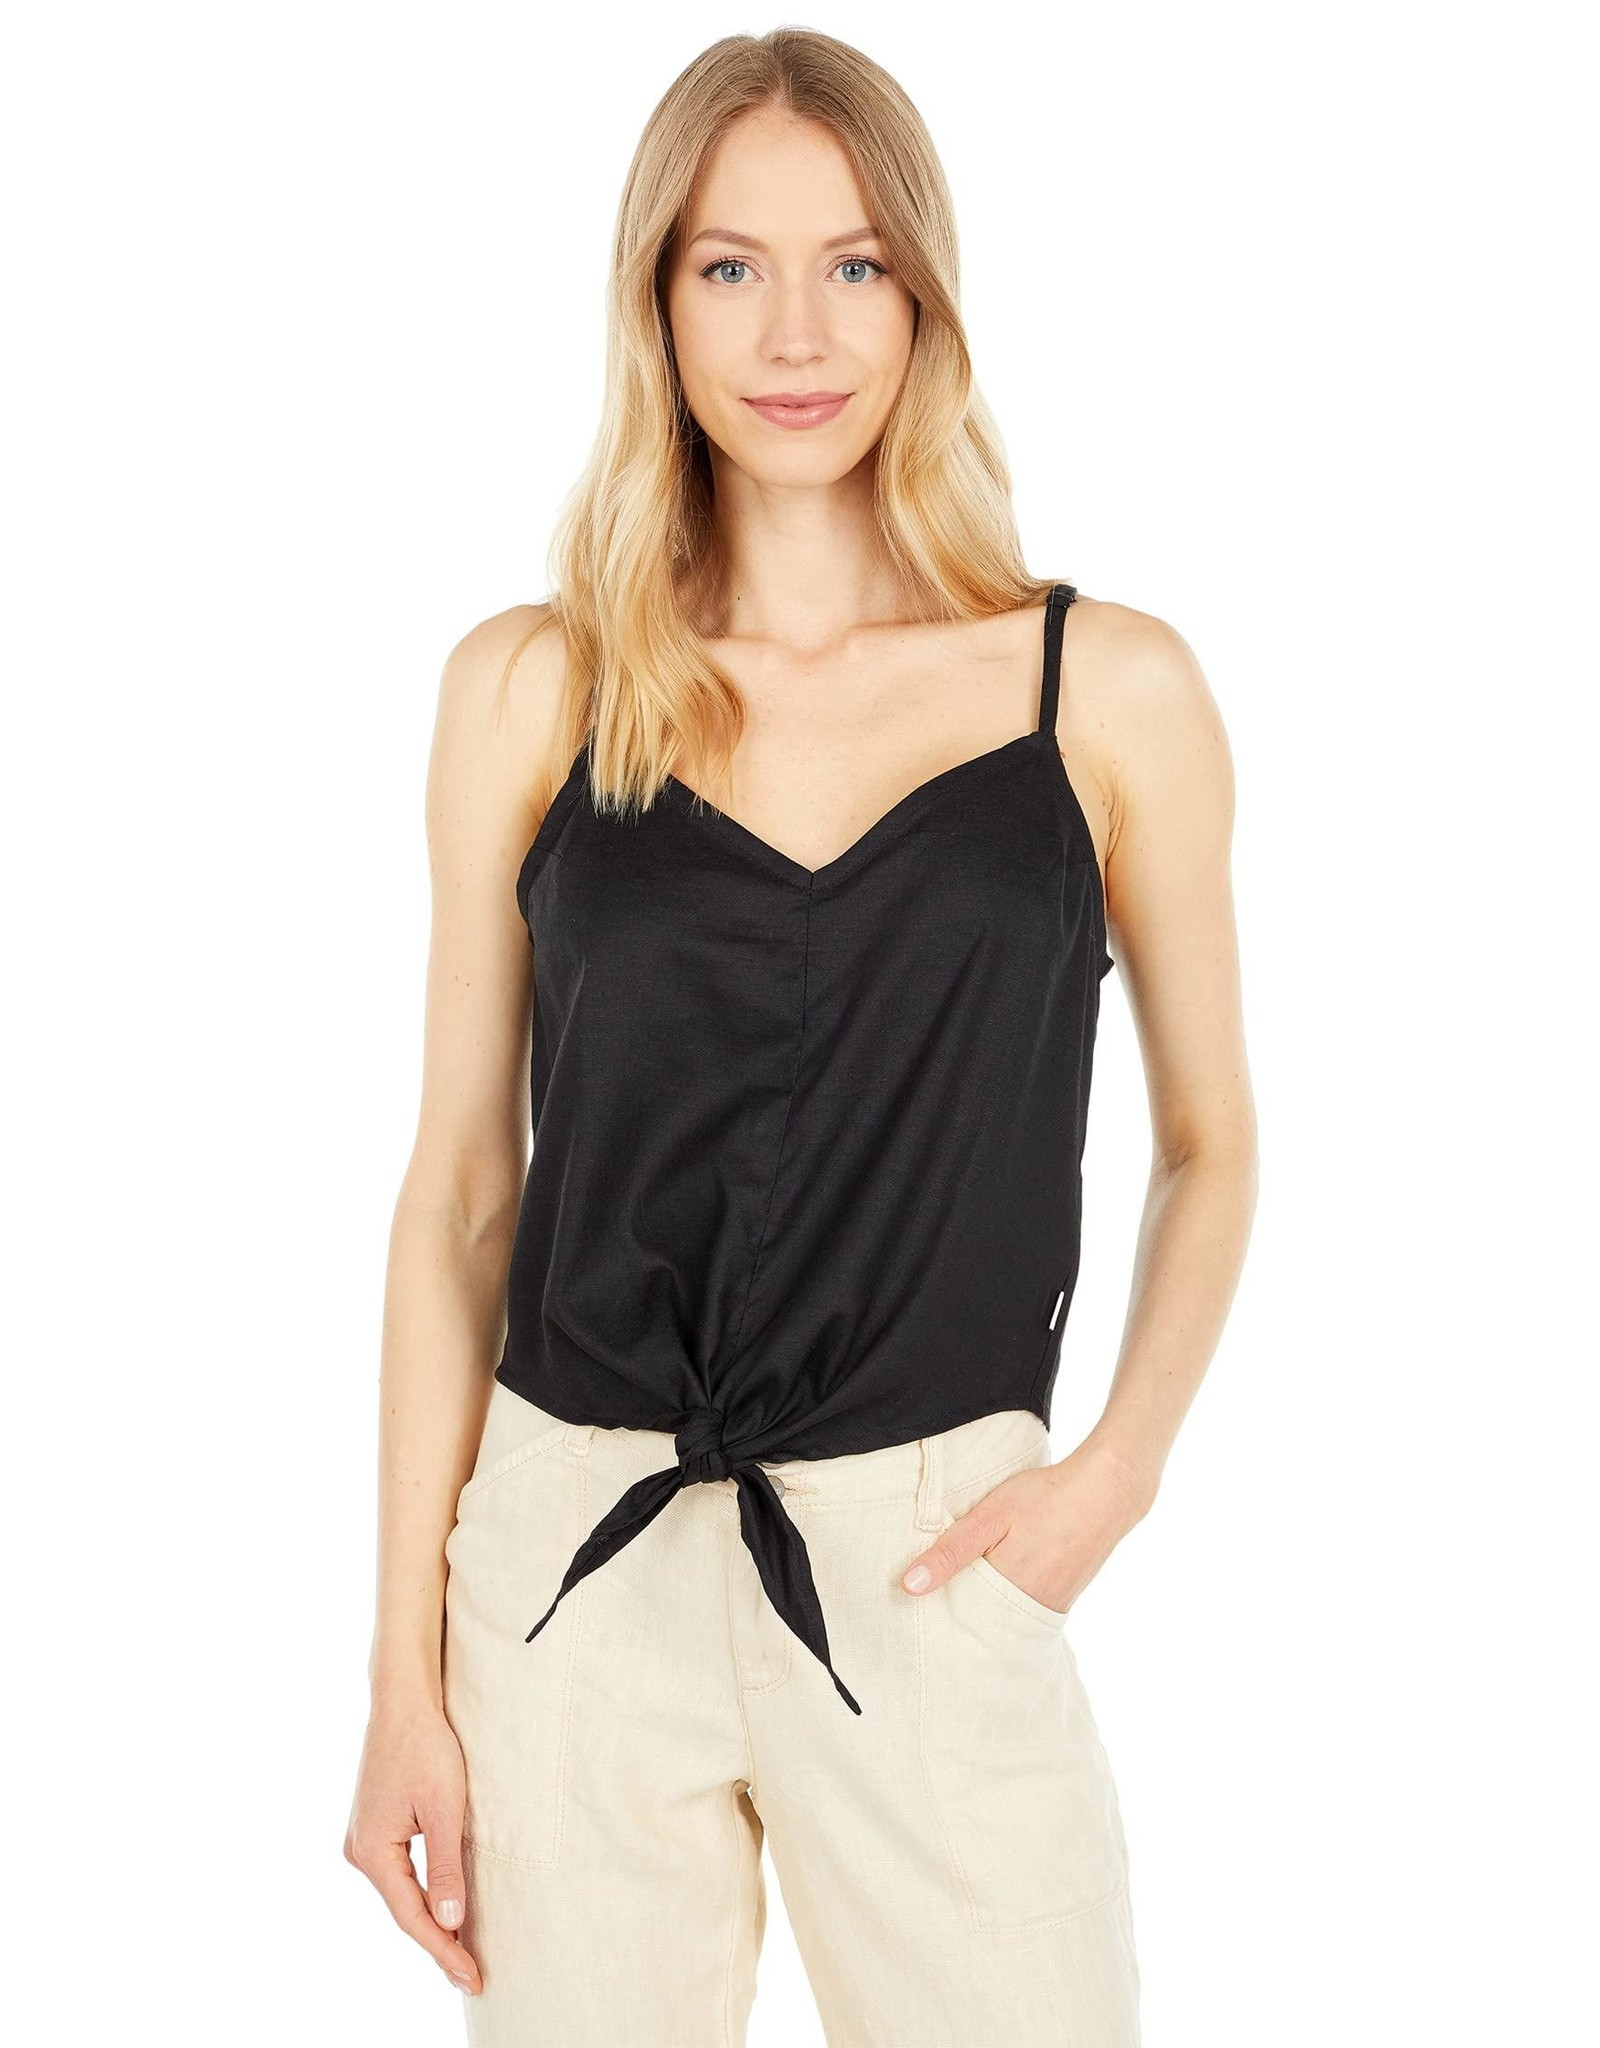 The North Face The North Face Women's Hillrose Hemp Tank -S2021